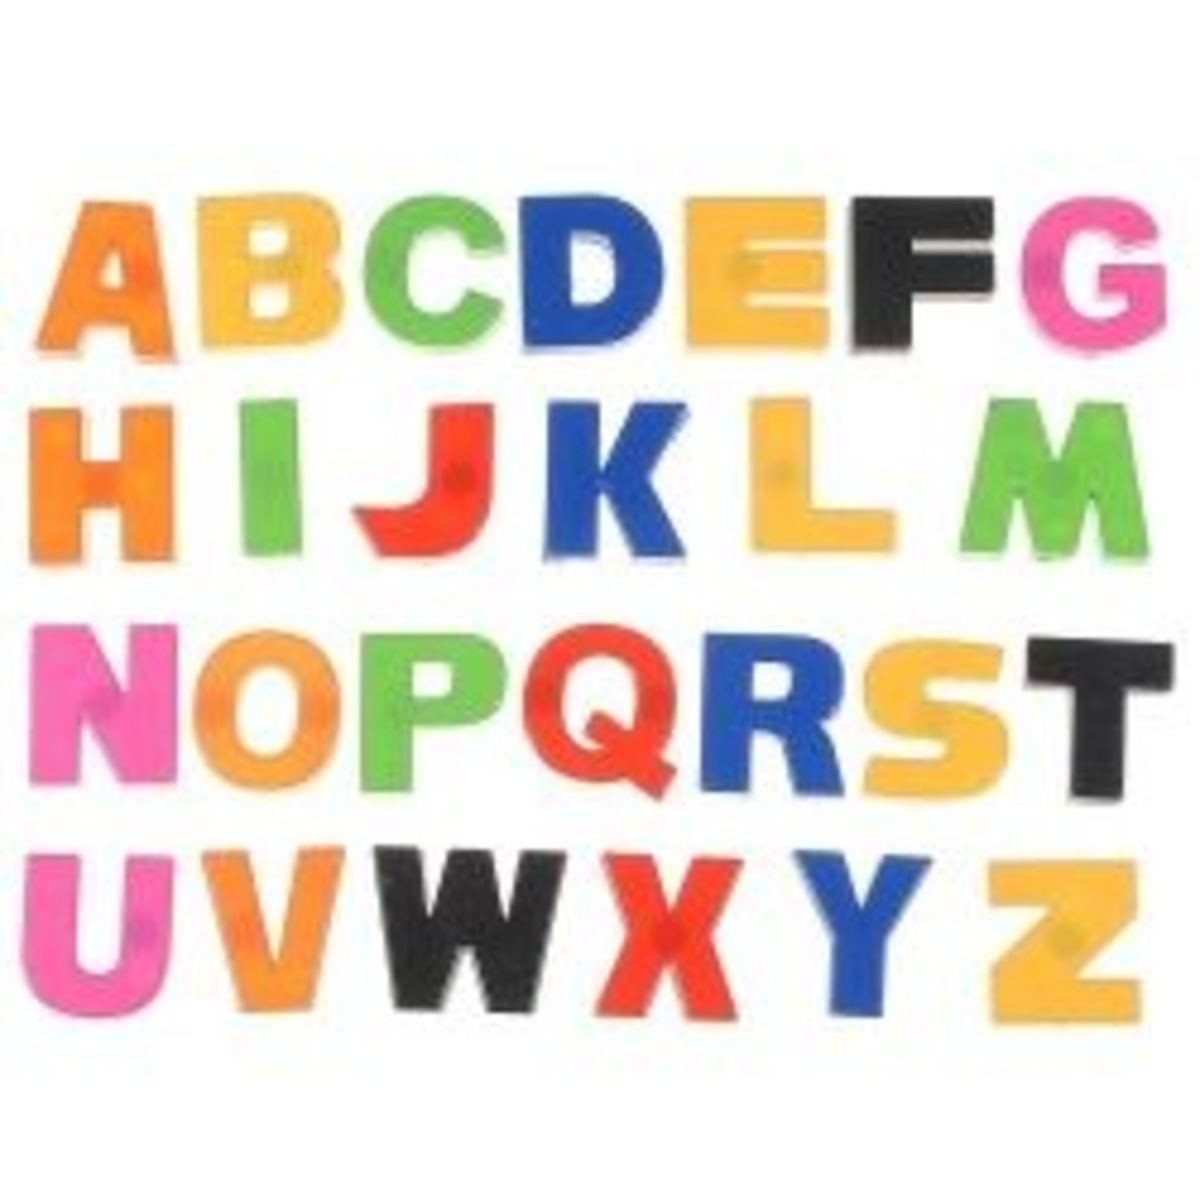 Where To Buy Best Magnetic Letters For Toddlers?